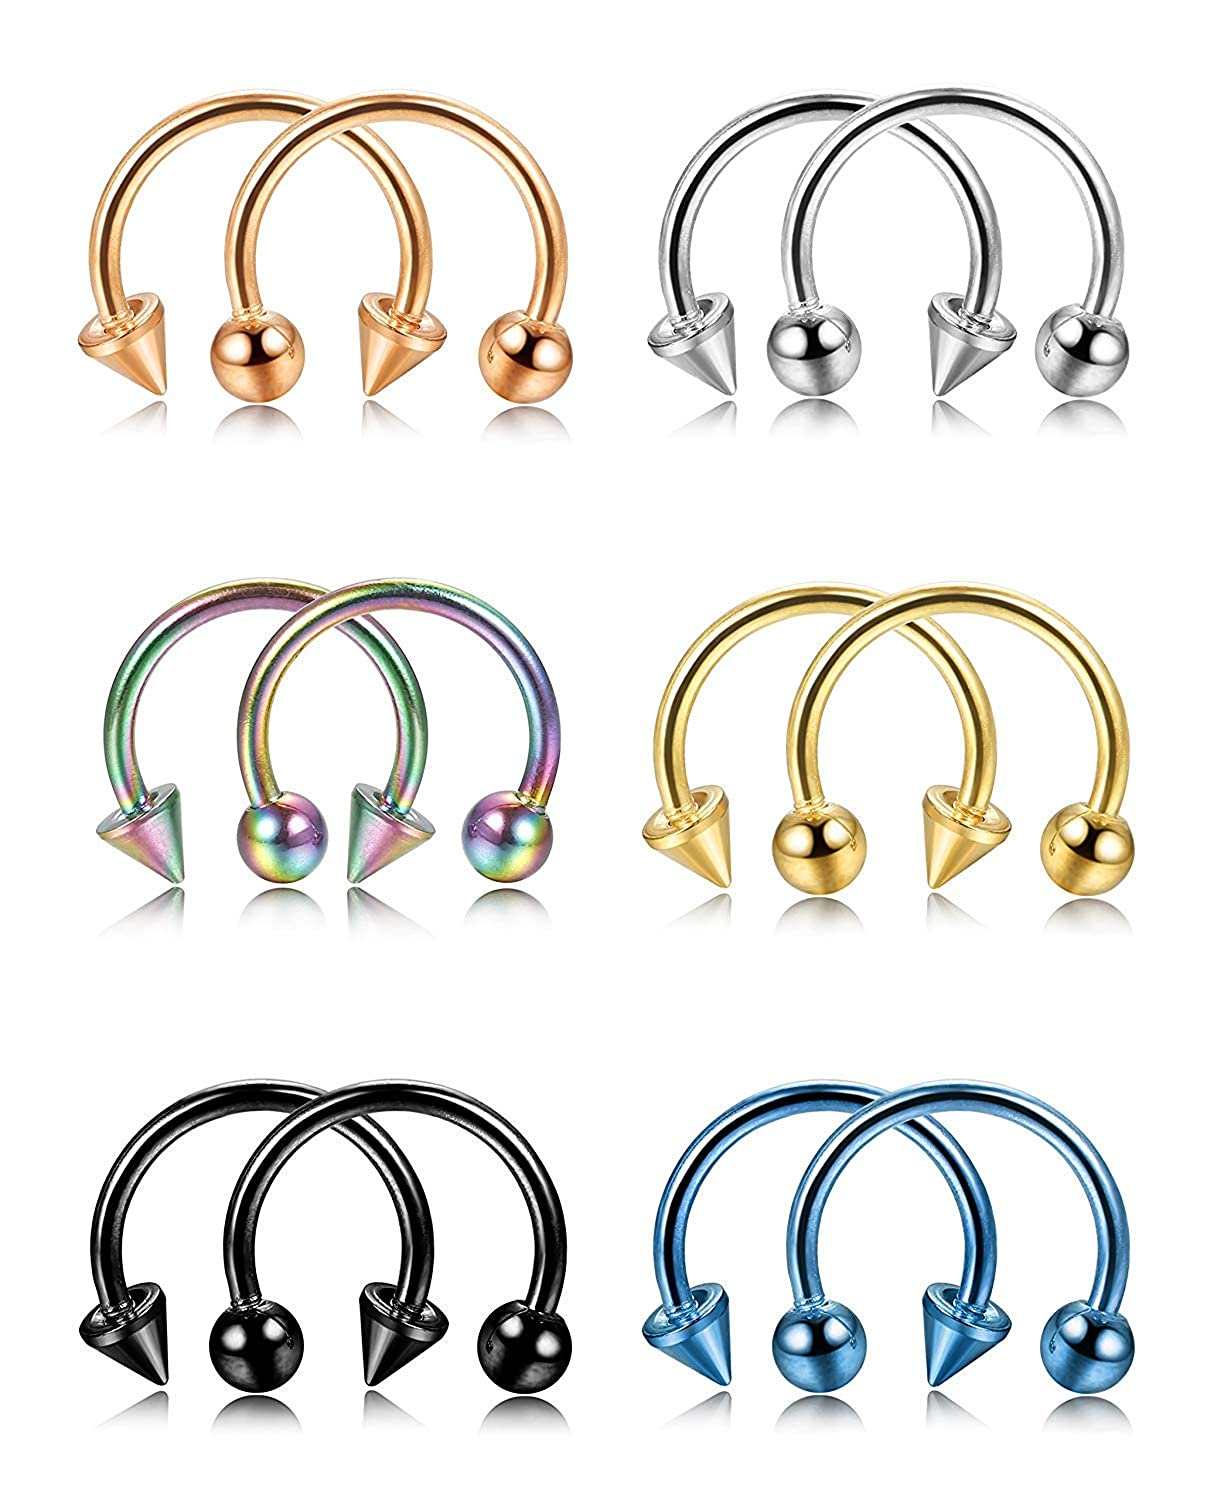 Subiceto 12PCS 16G Stainless Steel Multi-Functional Nose Septum Horseshoe Hoop Earring Lip Nipple Captive Hoop Ring Tragus Cartilage Earrings SU-P49-12